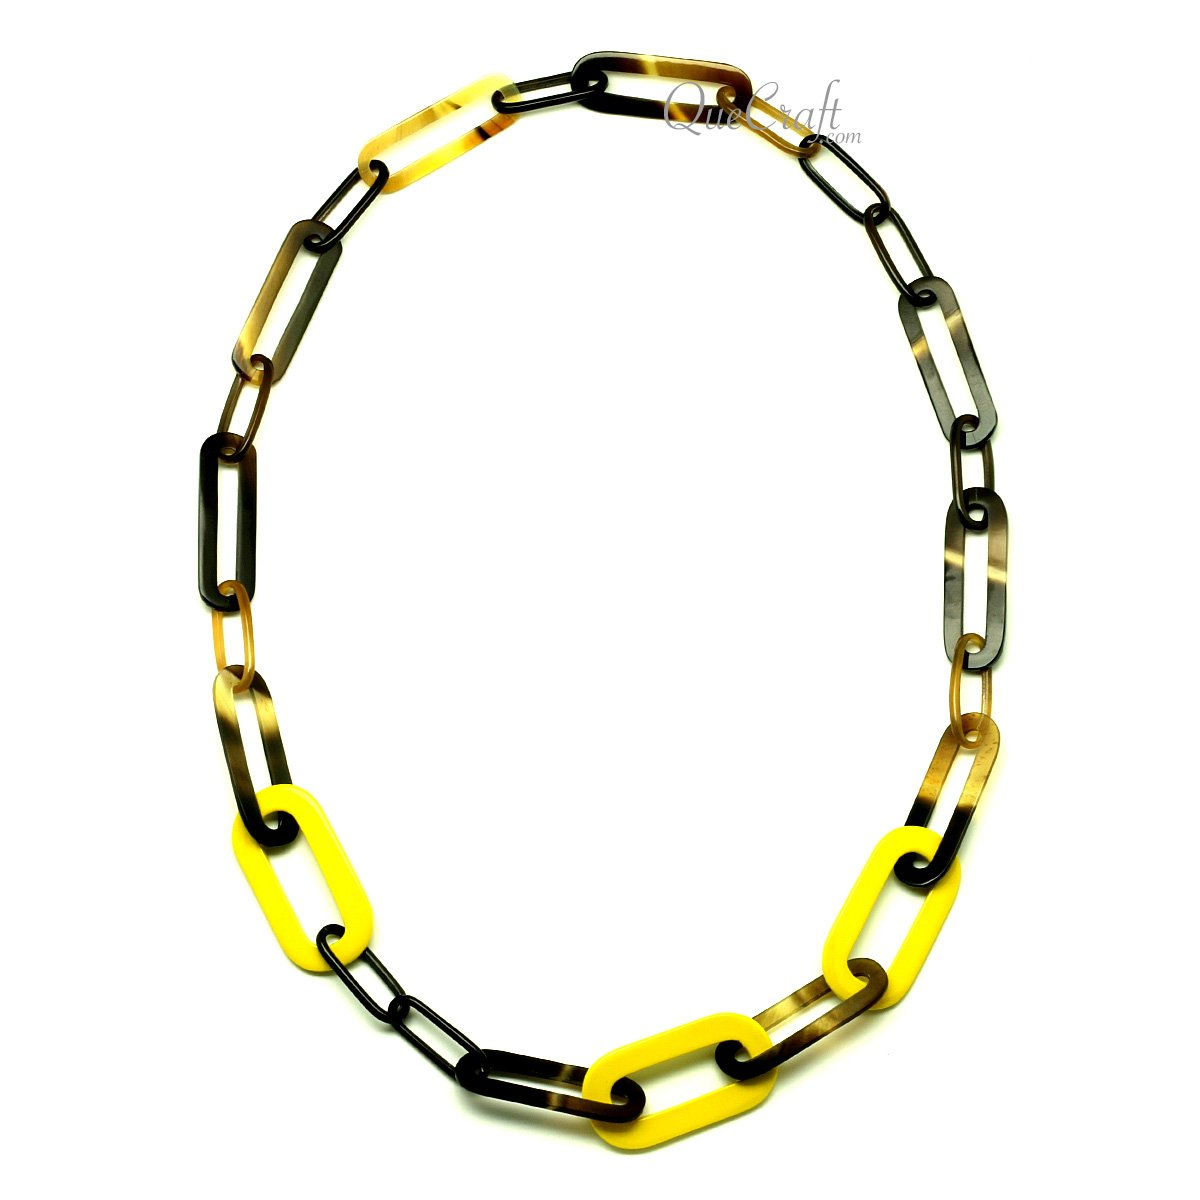 Horn & Lacquer Chain Necklace #13291 - HORN.JEWELRY